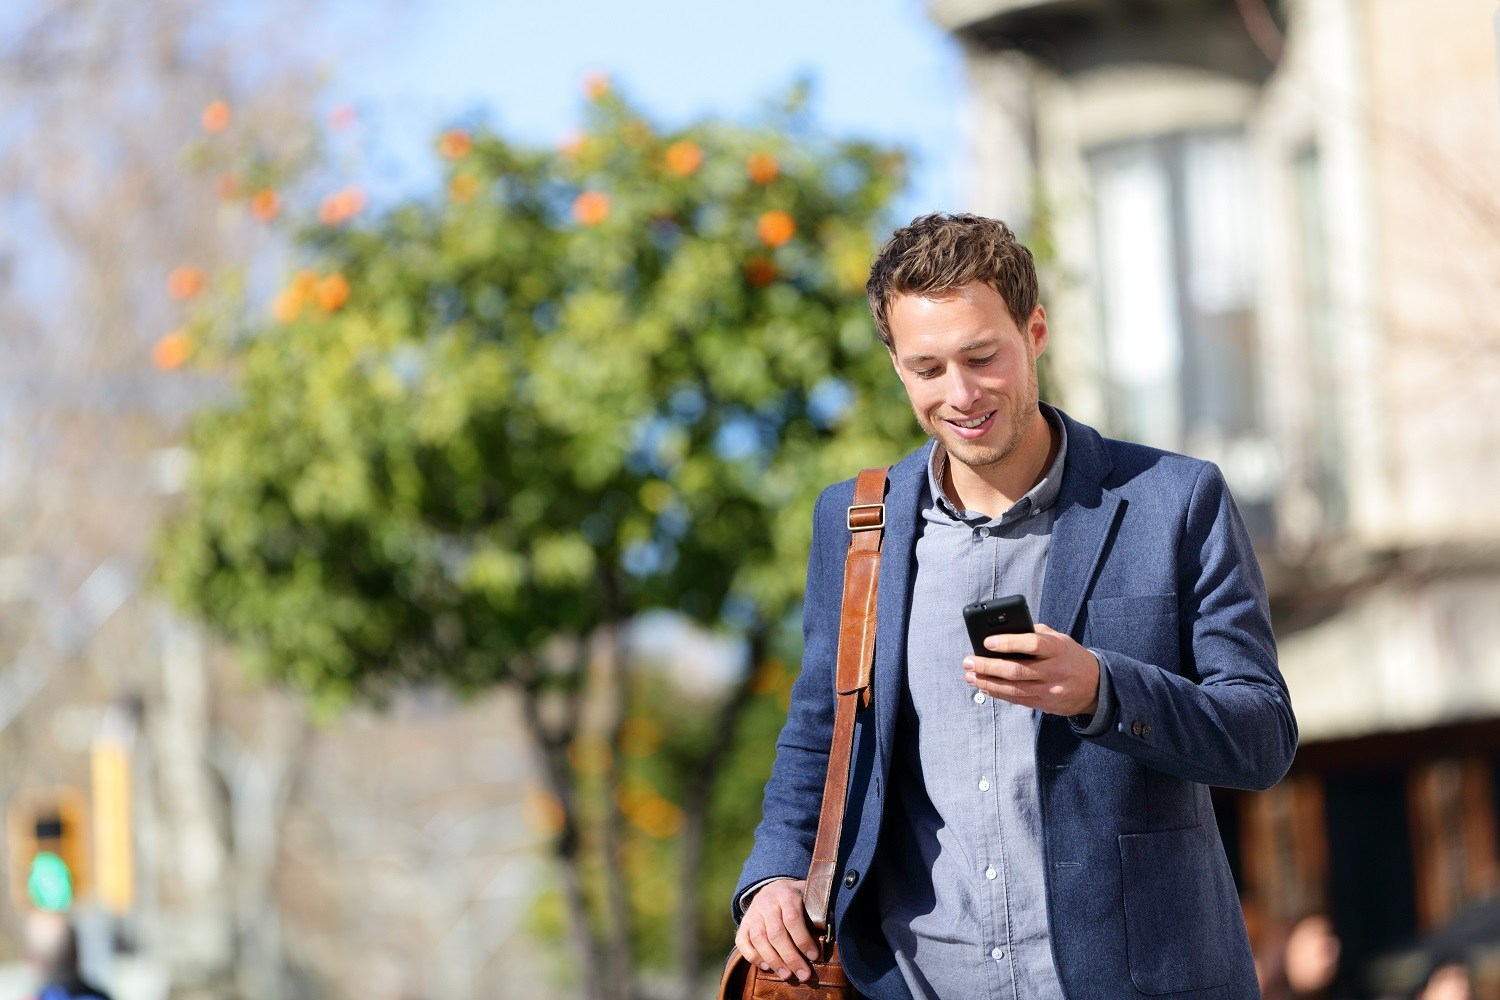 Man walking on the street looking at his phone